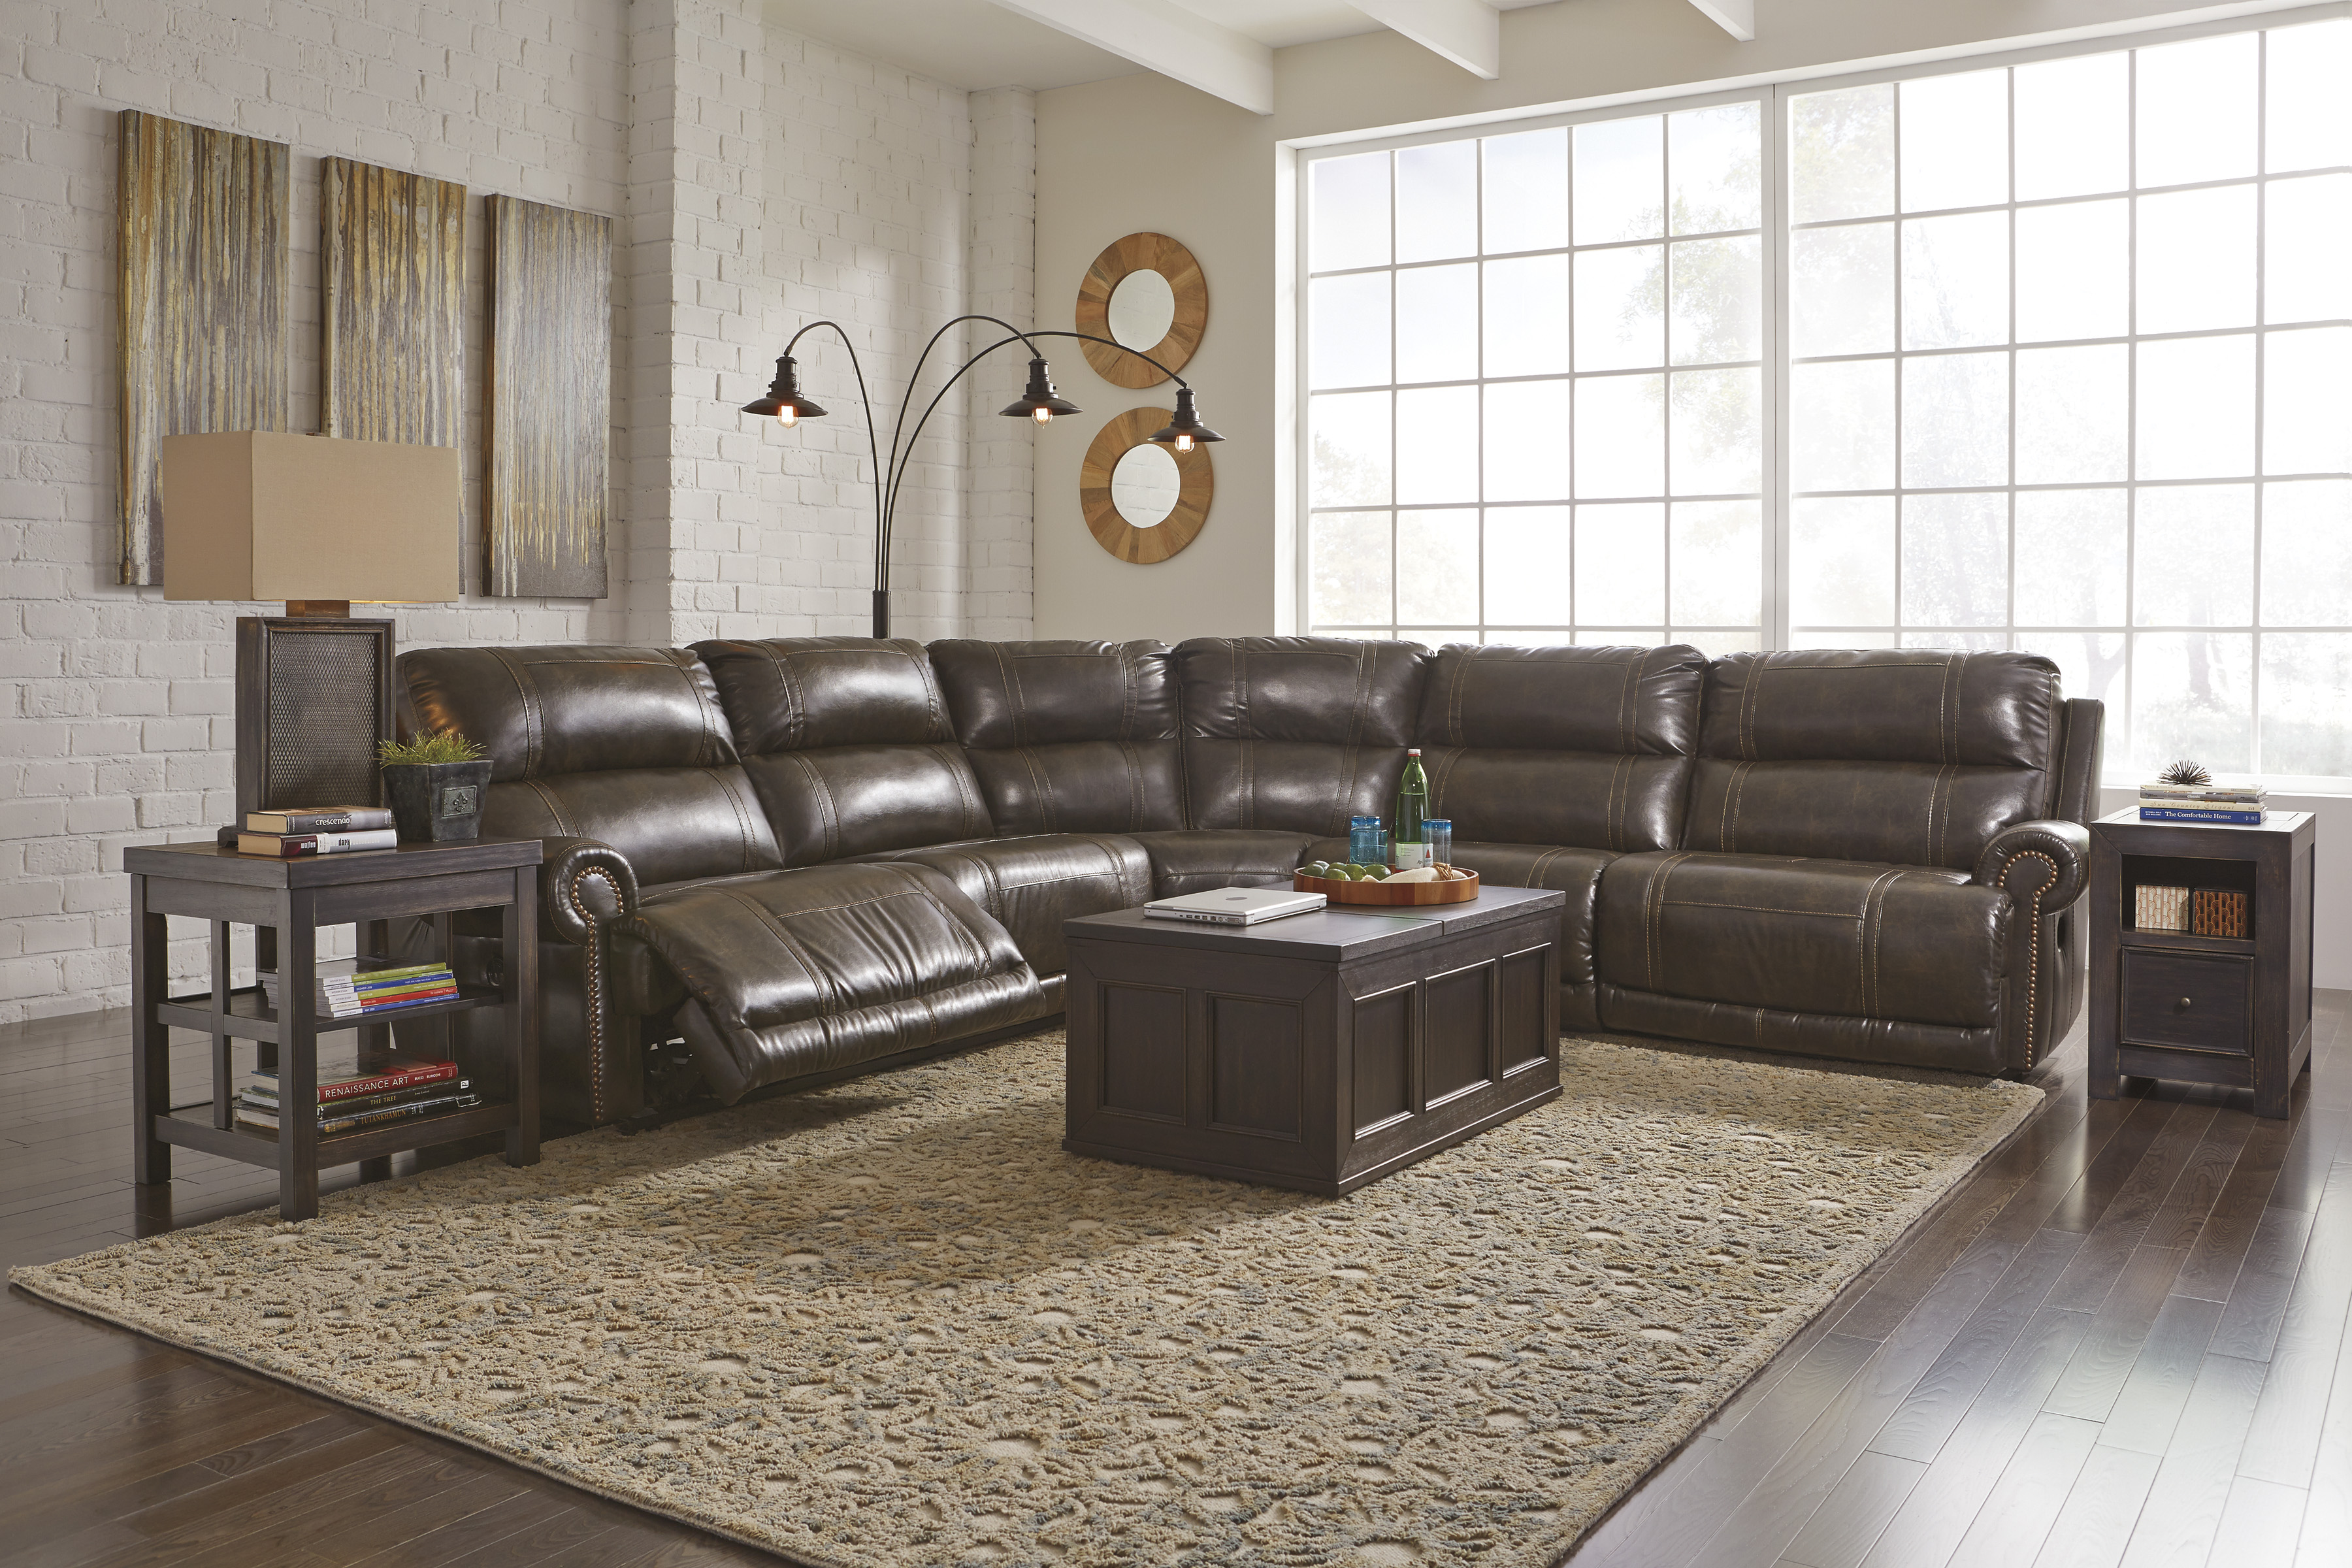 of set italian full contemporary best modern sofas size leather sectional sofa loveseats